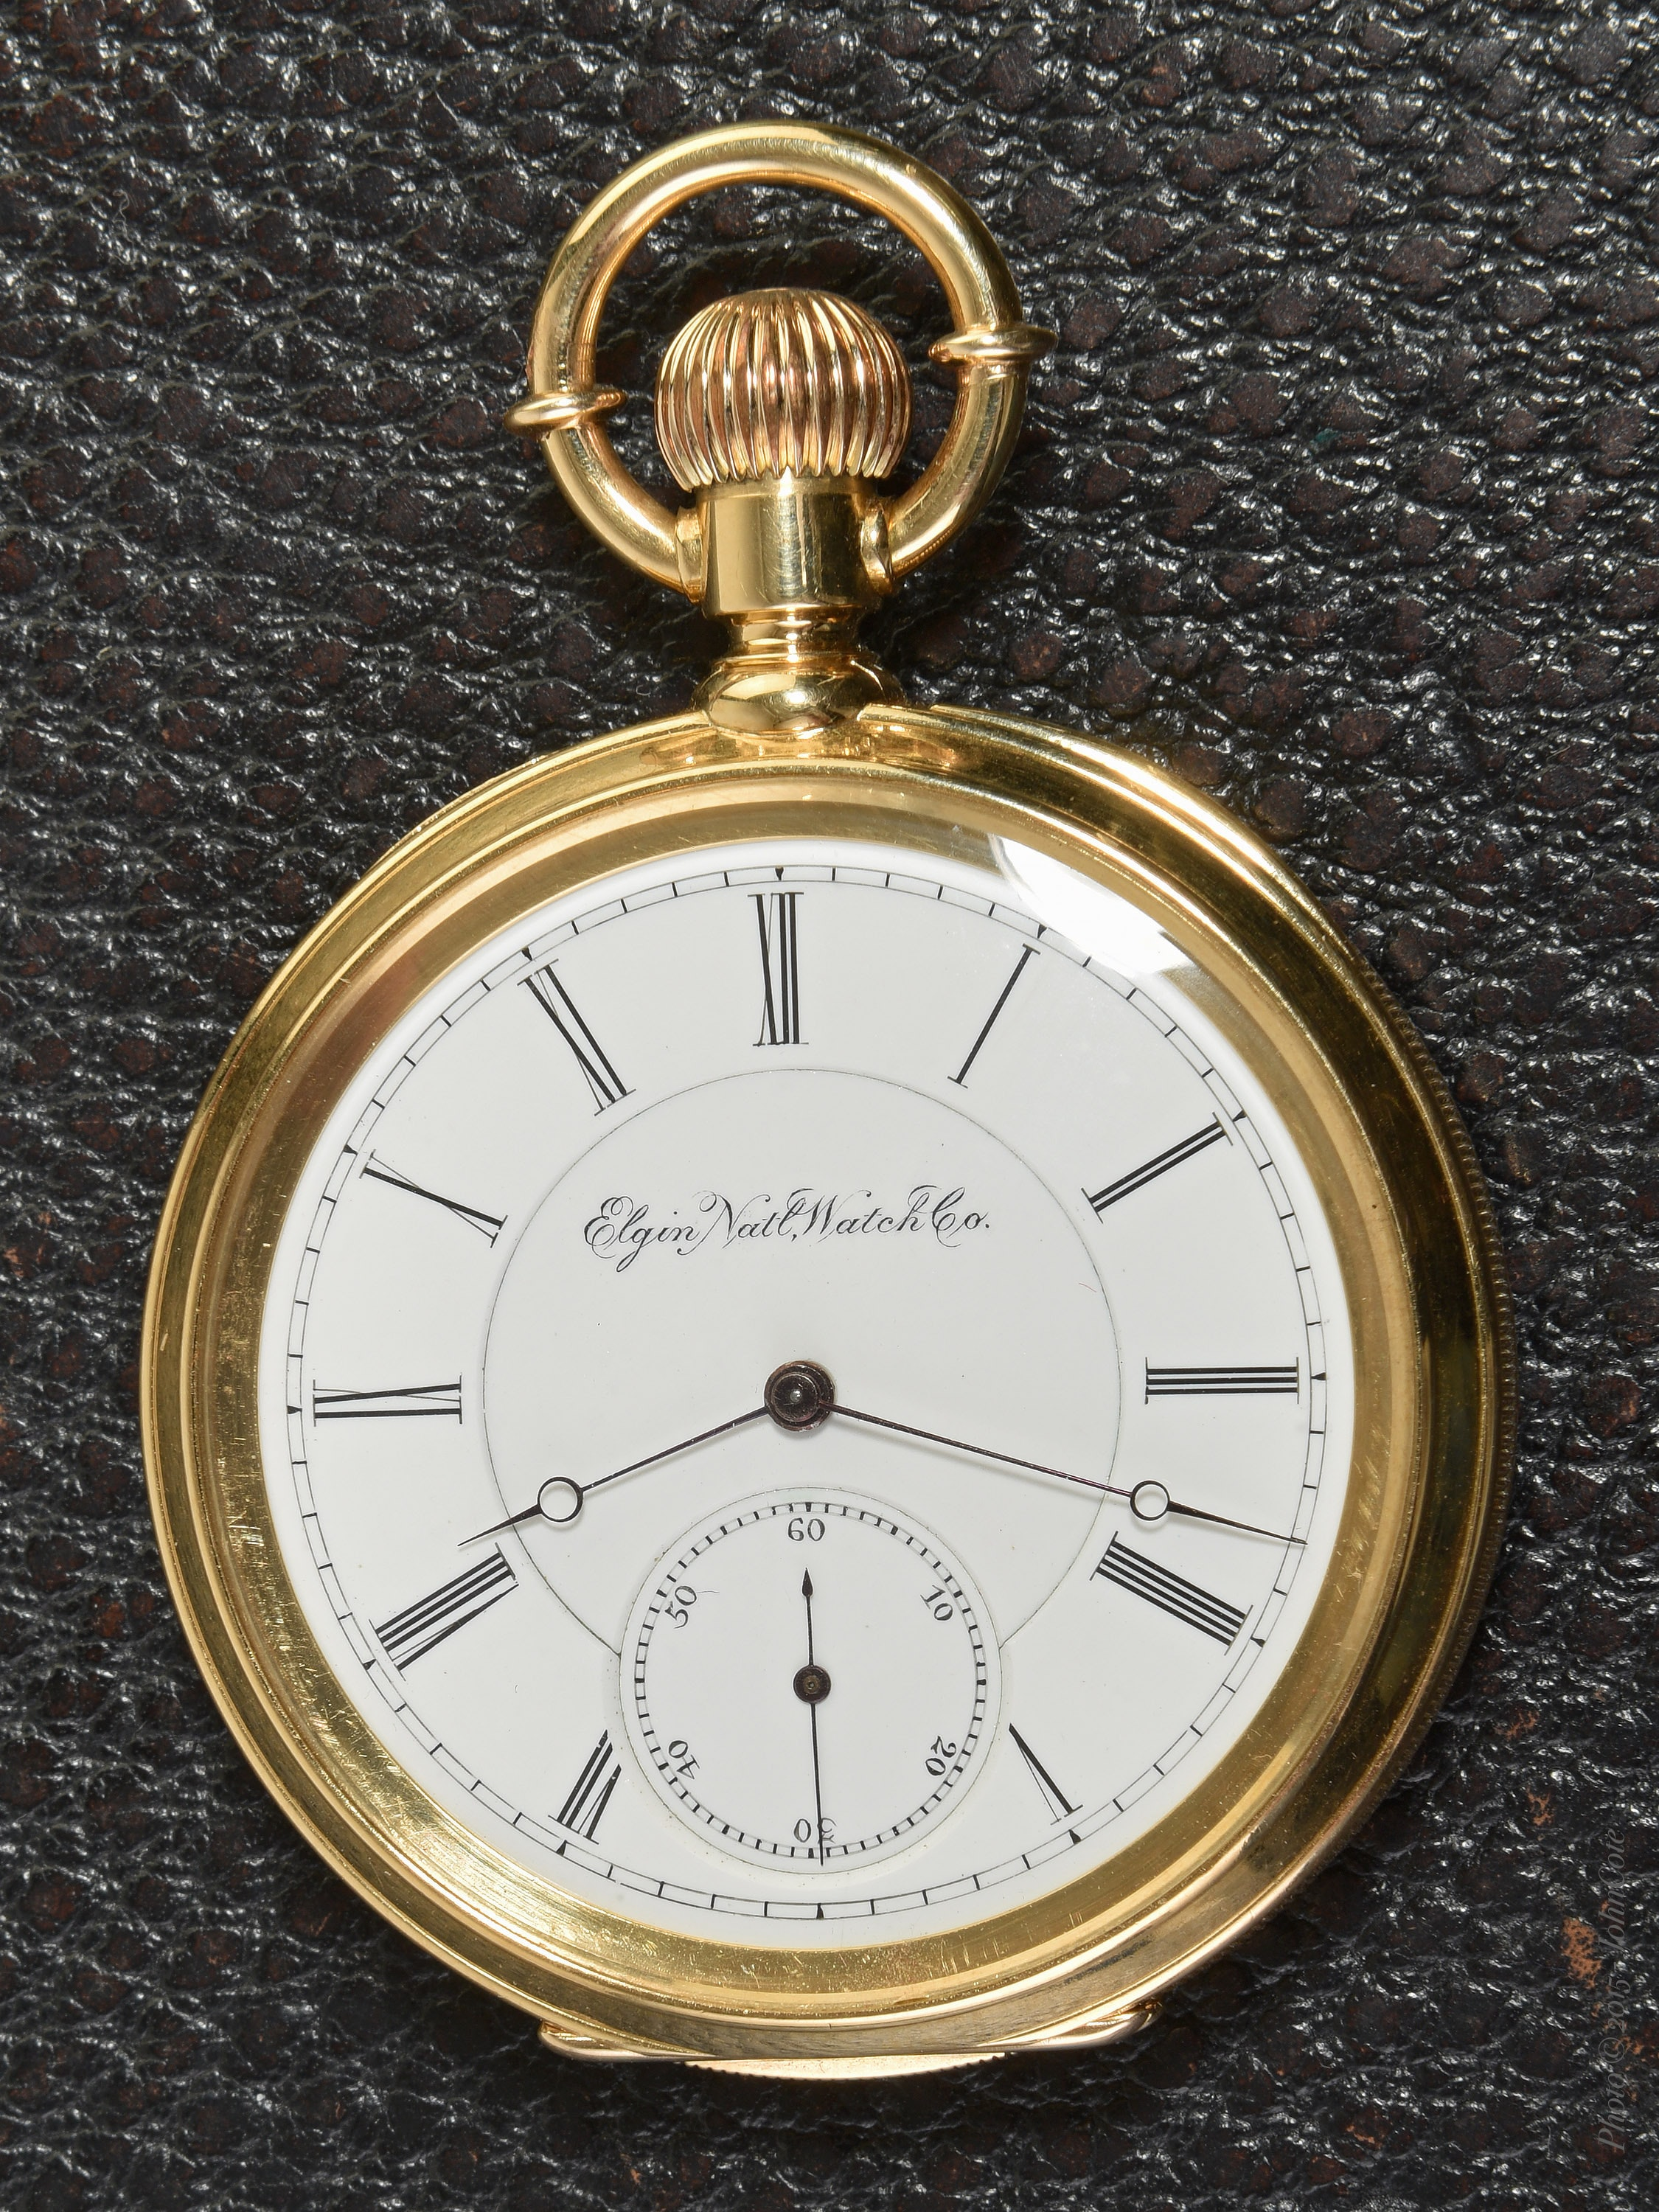 Dating your waltham pocket watch 4